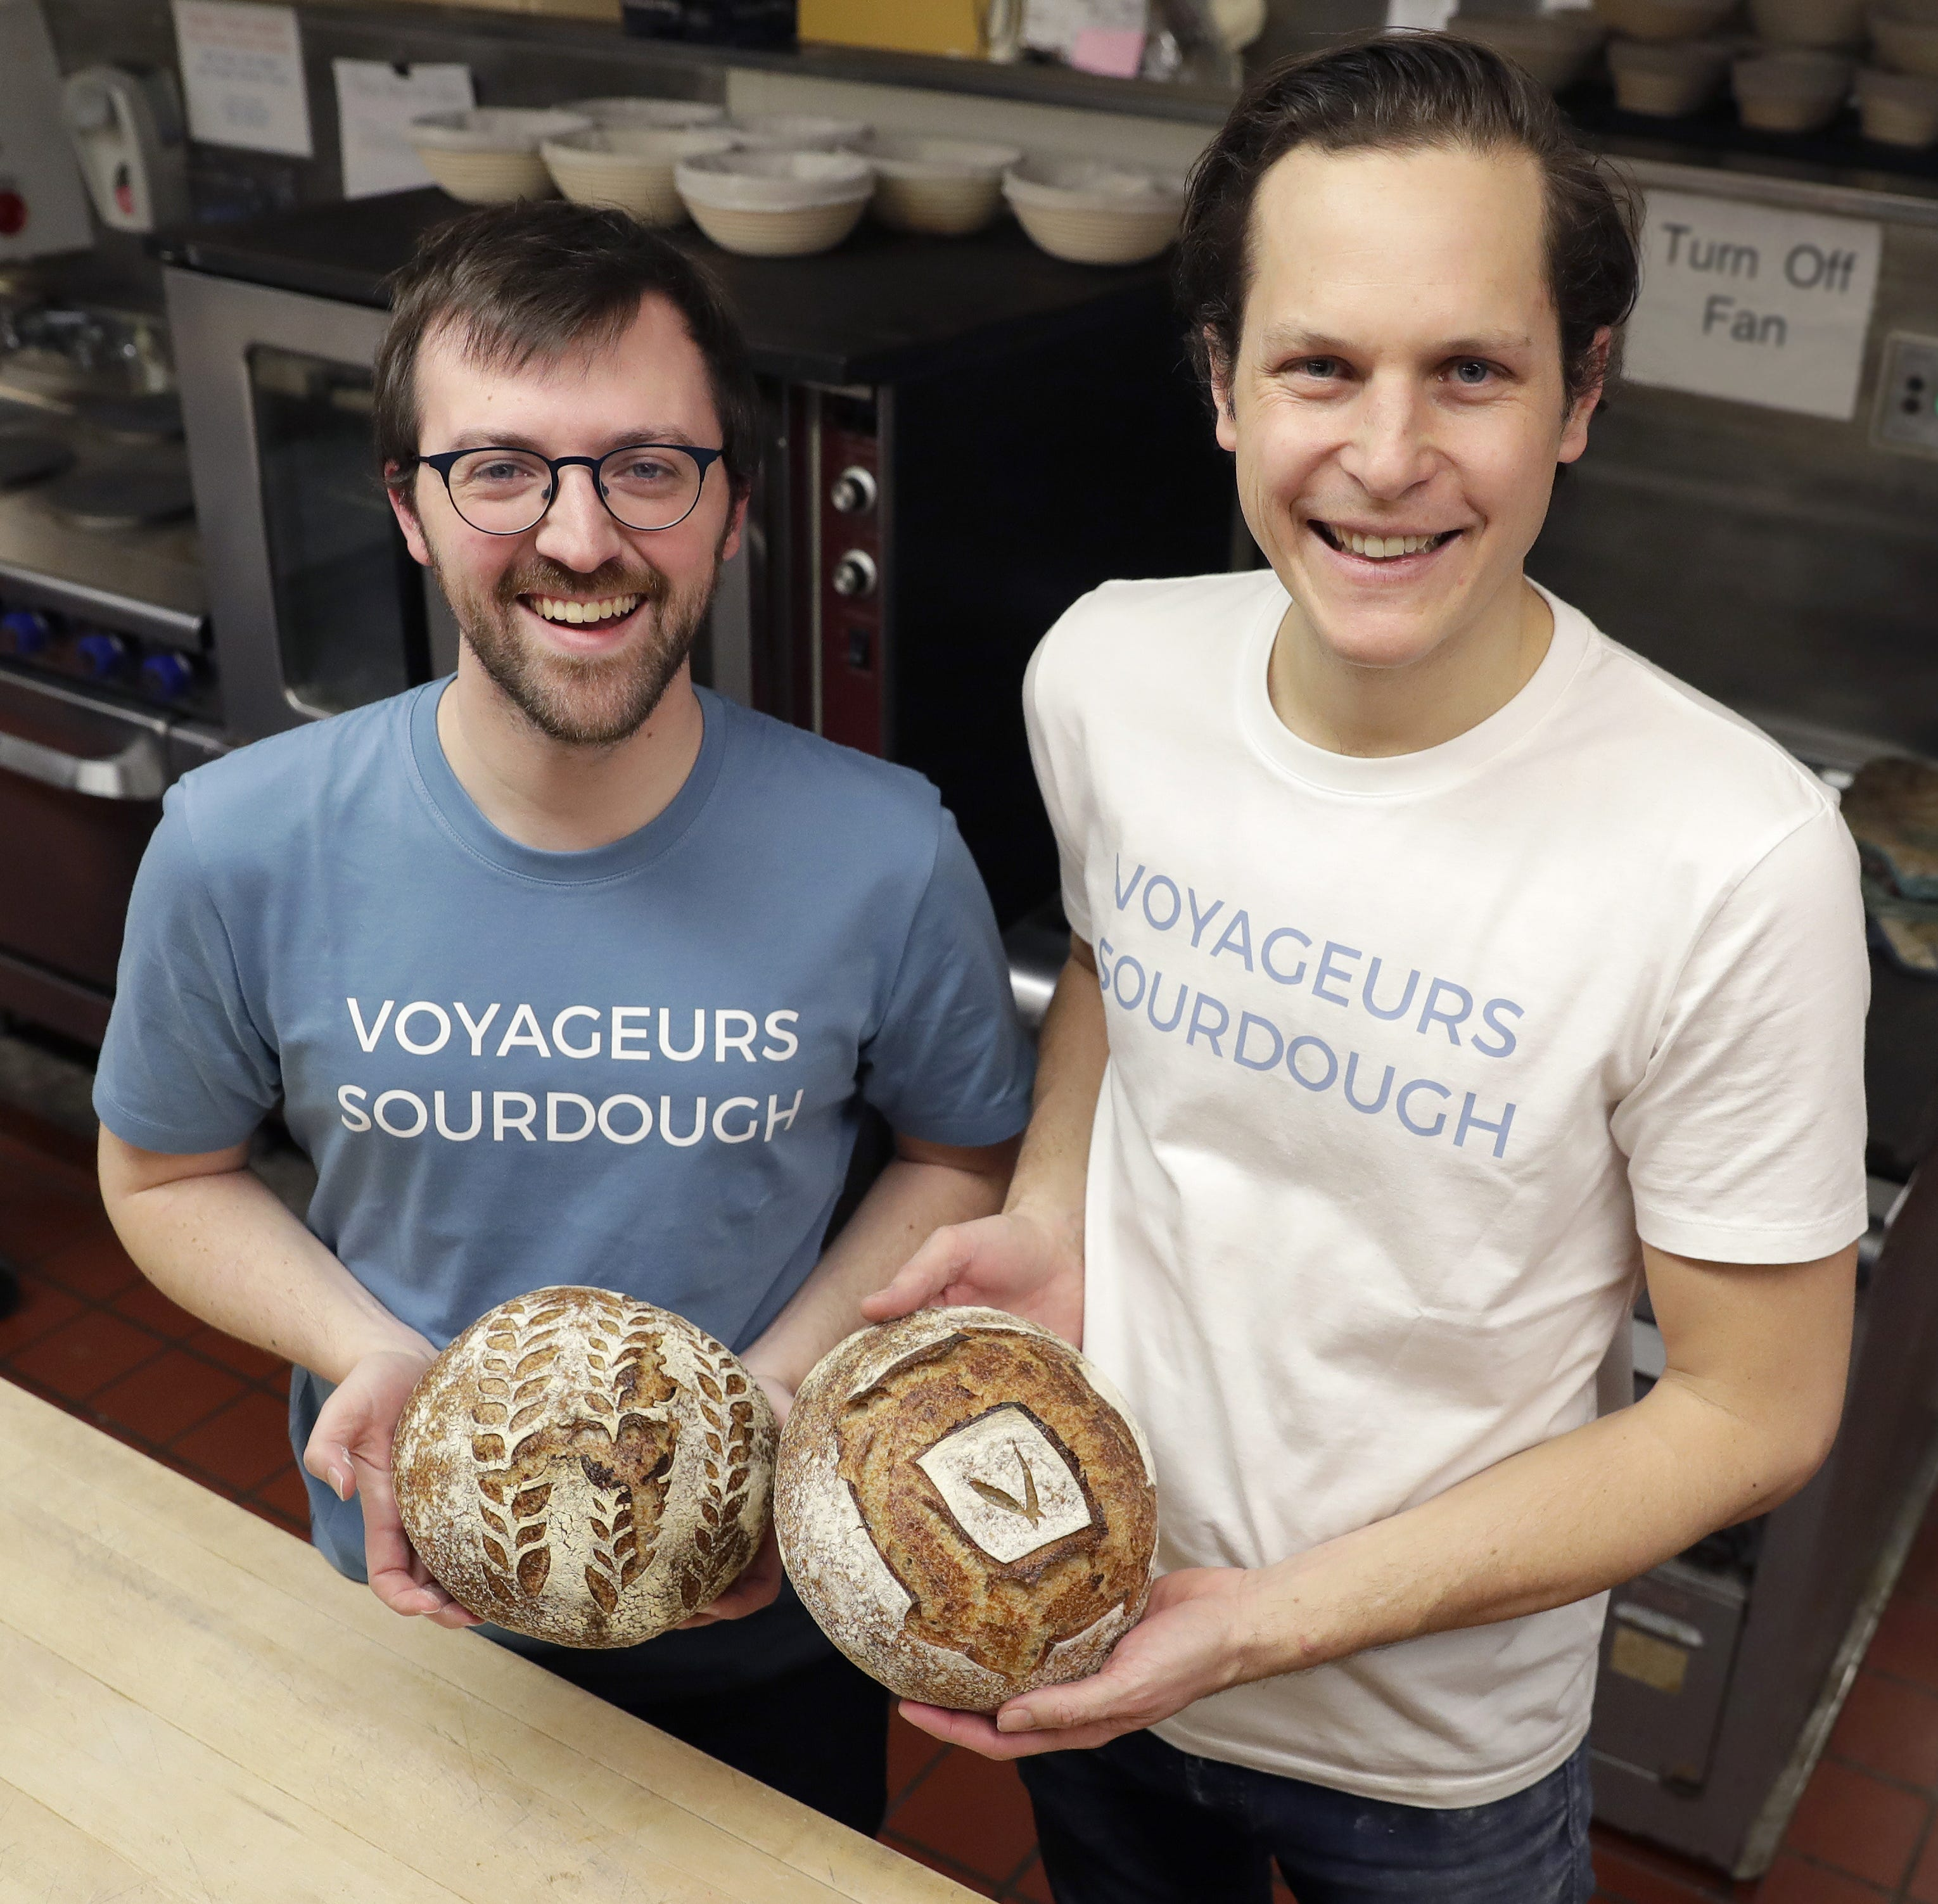 At Voyageurs Sourdough, fresh-baked artisan bread gets delivered to your door